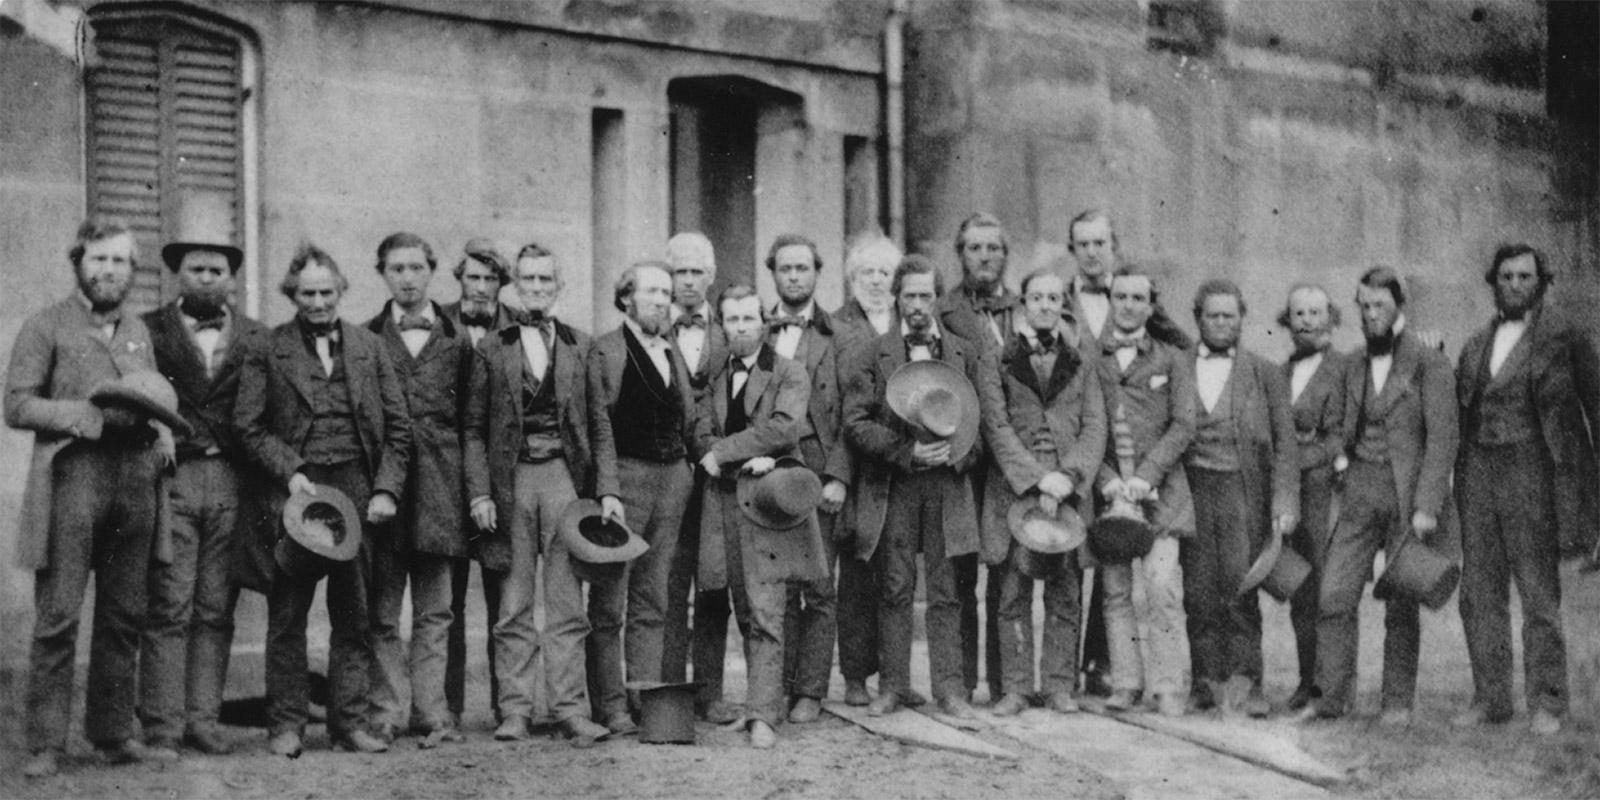 Historical photo of 20 men standing together, holding their hats.